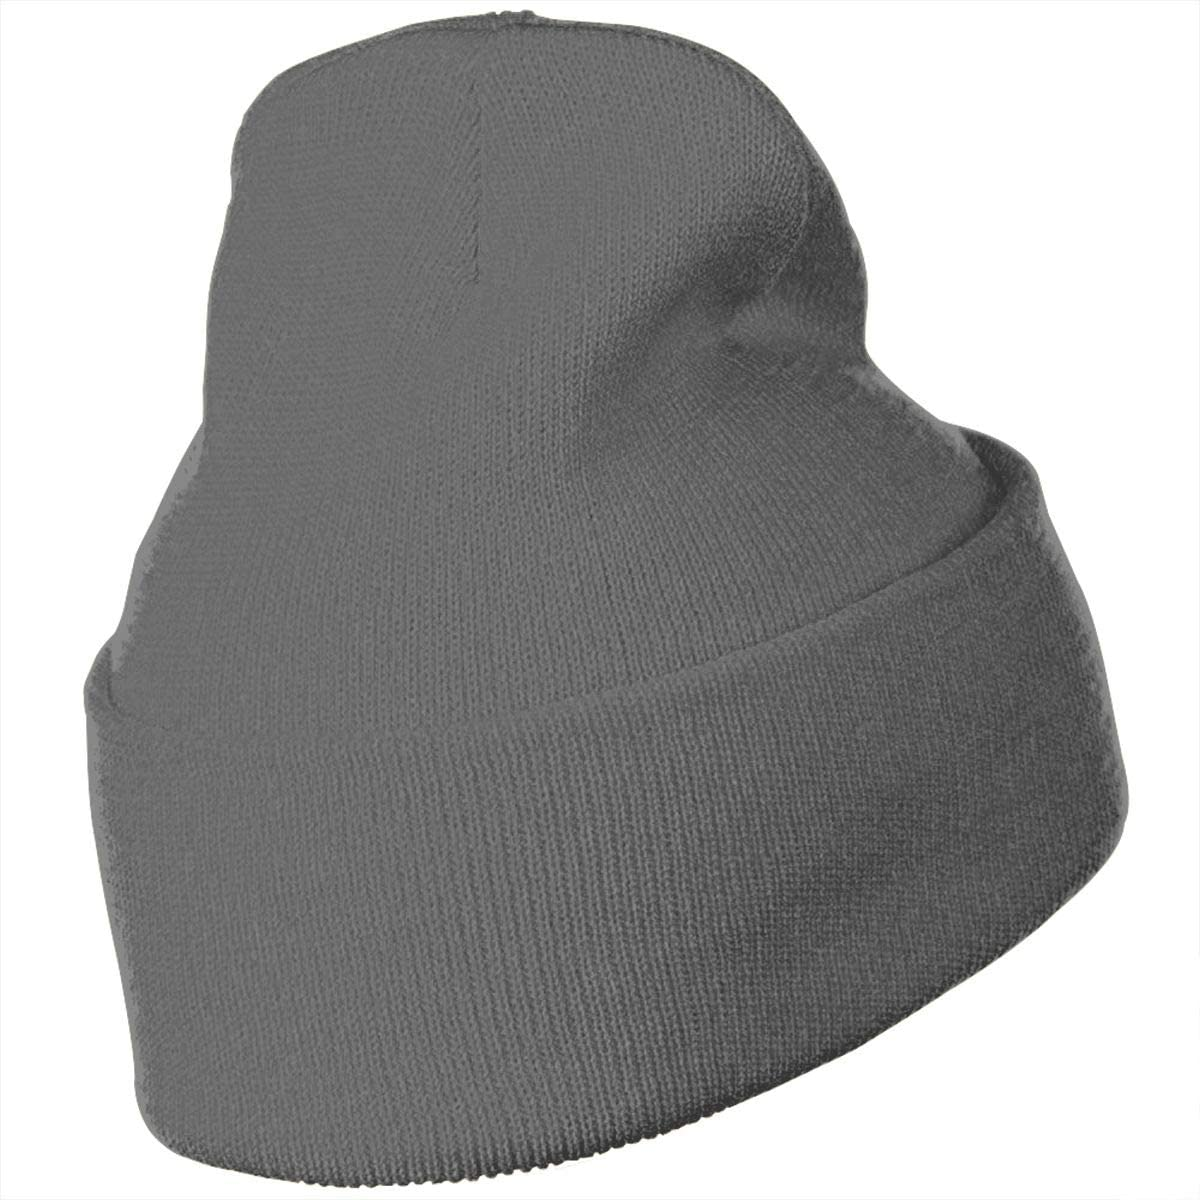 JimHappy Grapefruit Hat for Men and Women Winter Warm Hats Knit Slouchy Thick Skull Cap Black